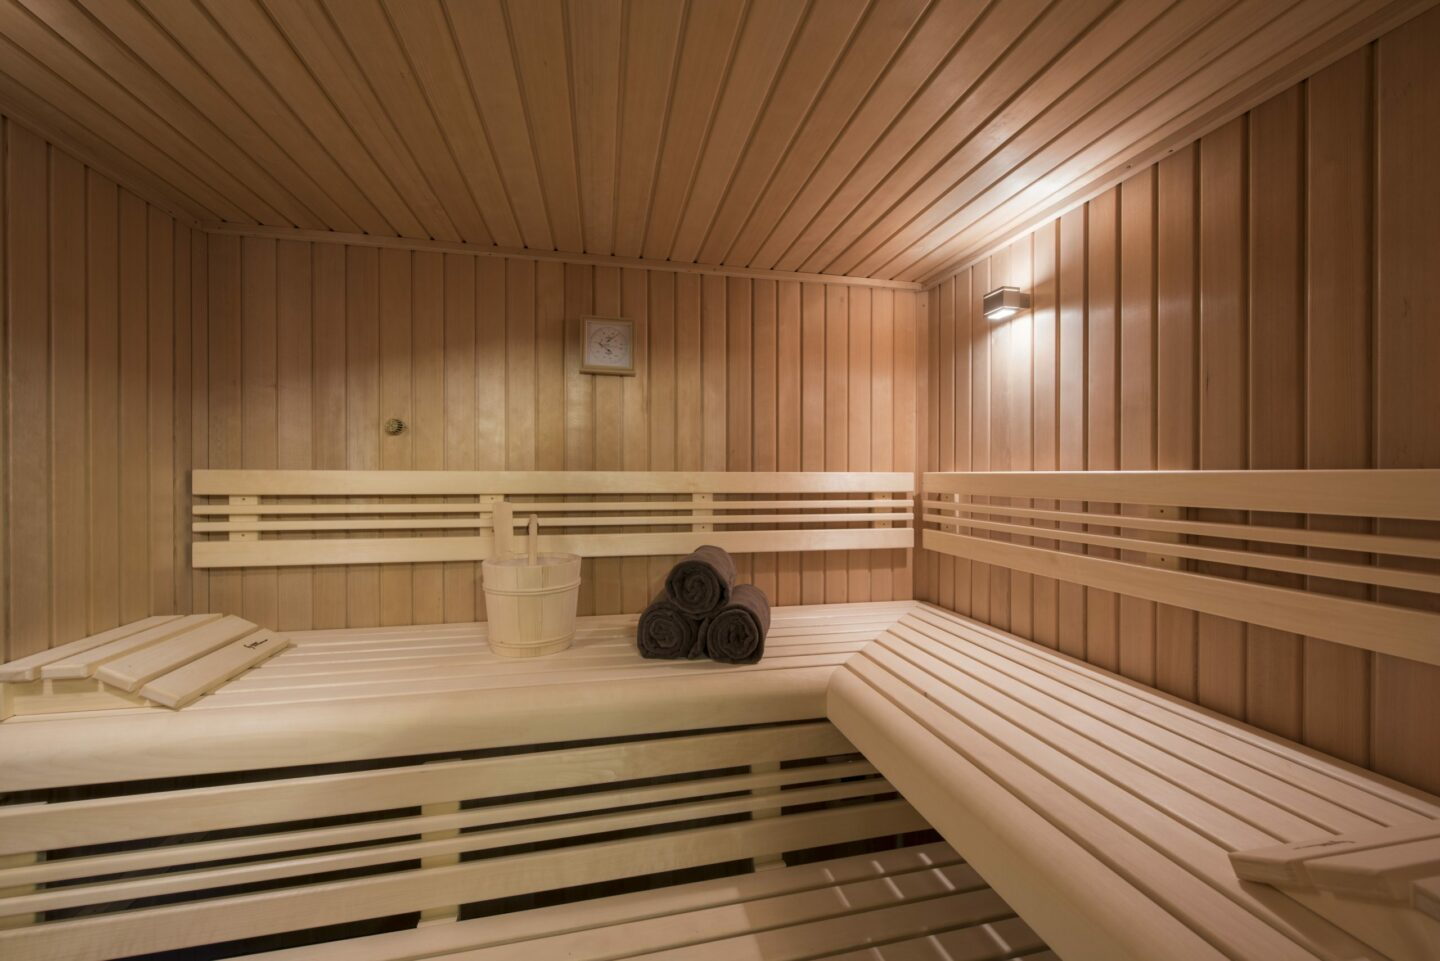 Sauna in the spa at Chalet Delormes in Verbier